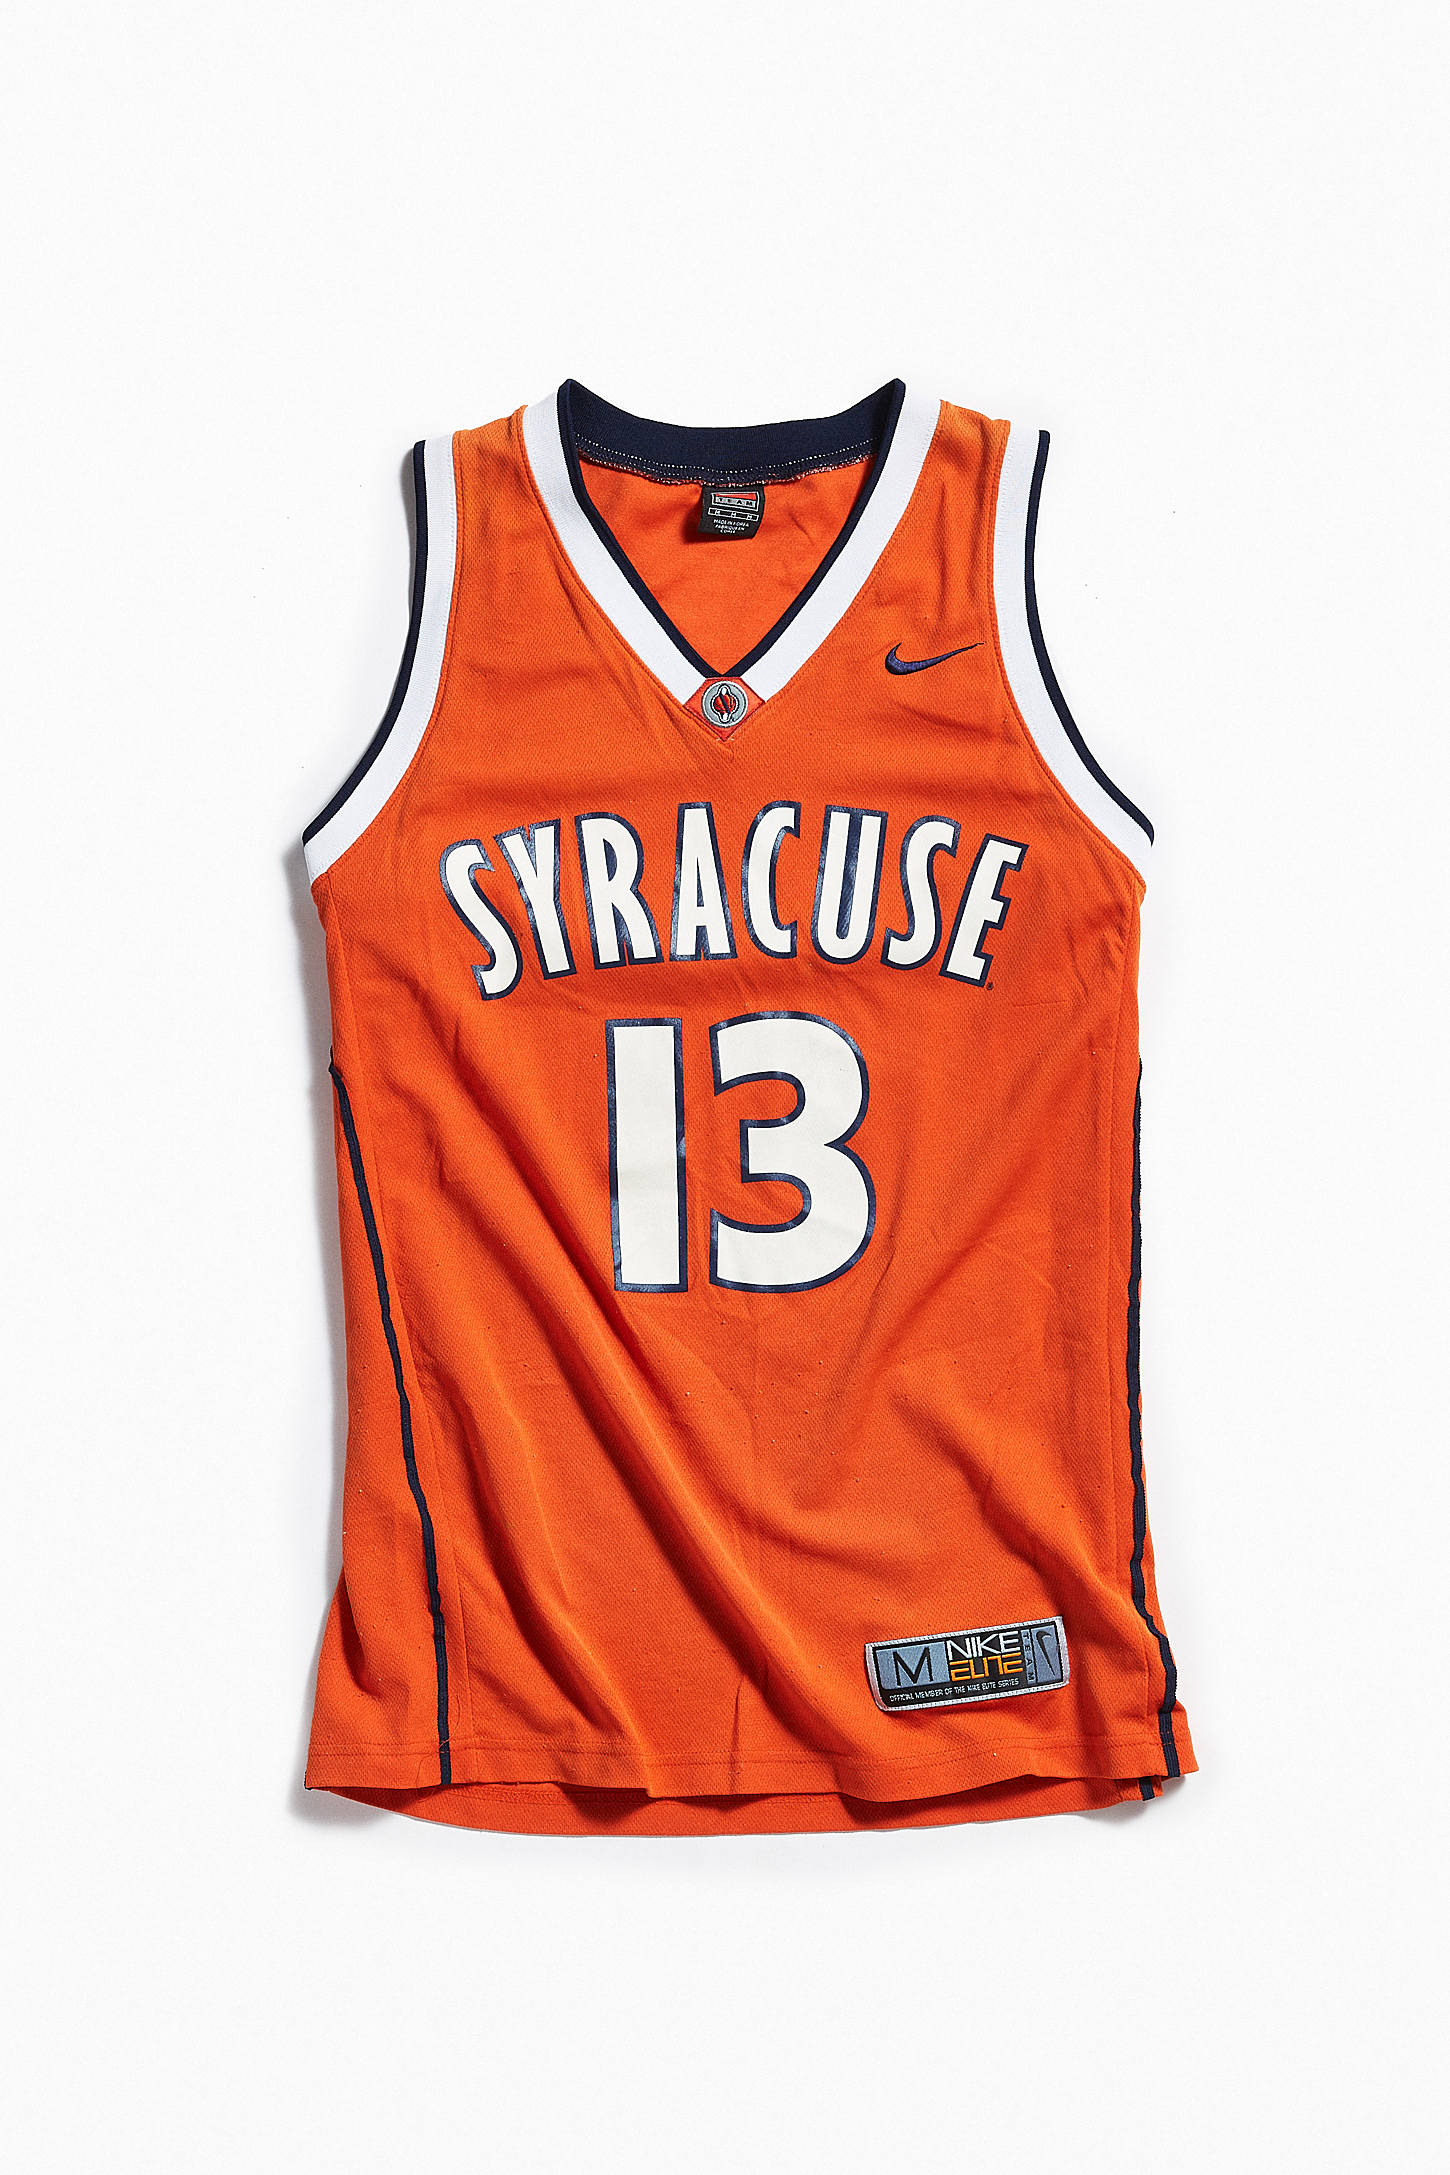 Vintage Nike Syracuse University Basketball Jersey Urban Outfitters